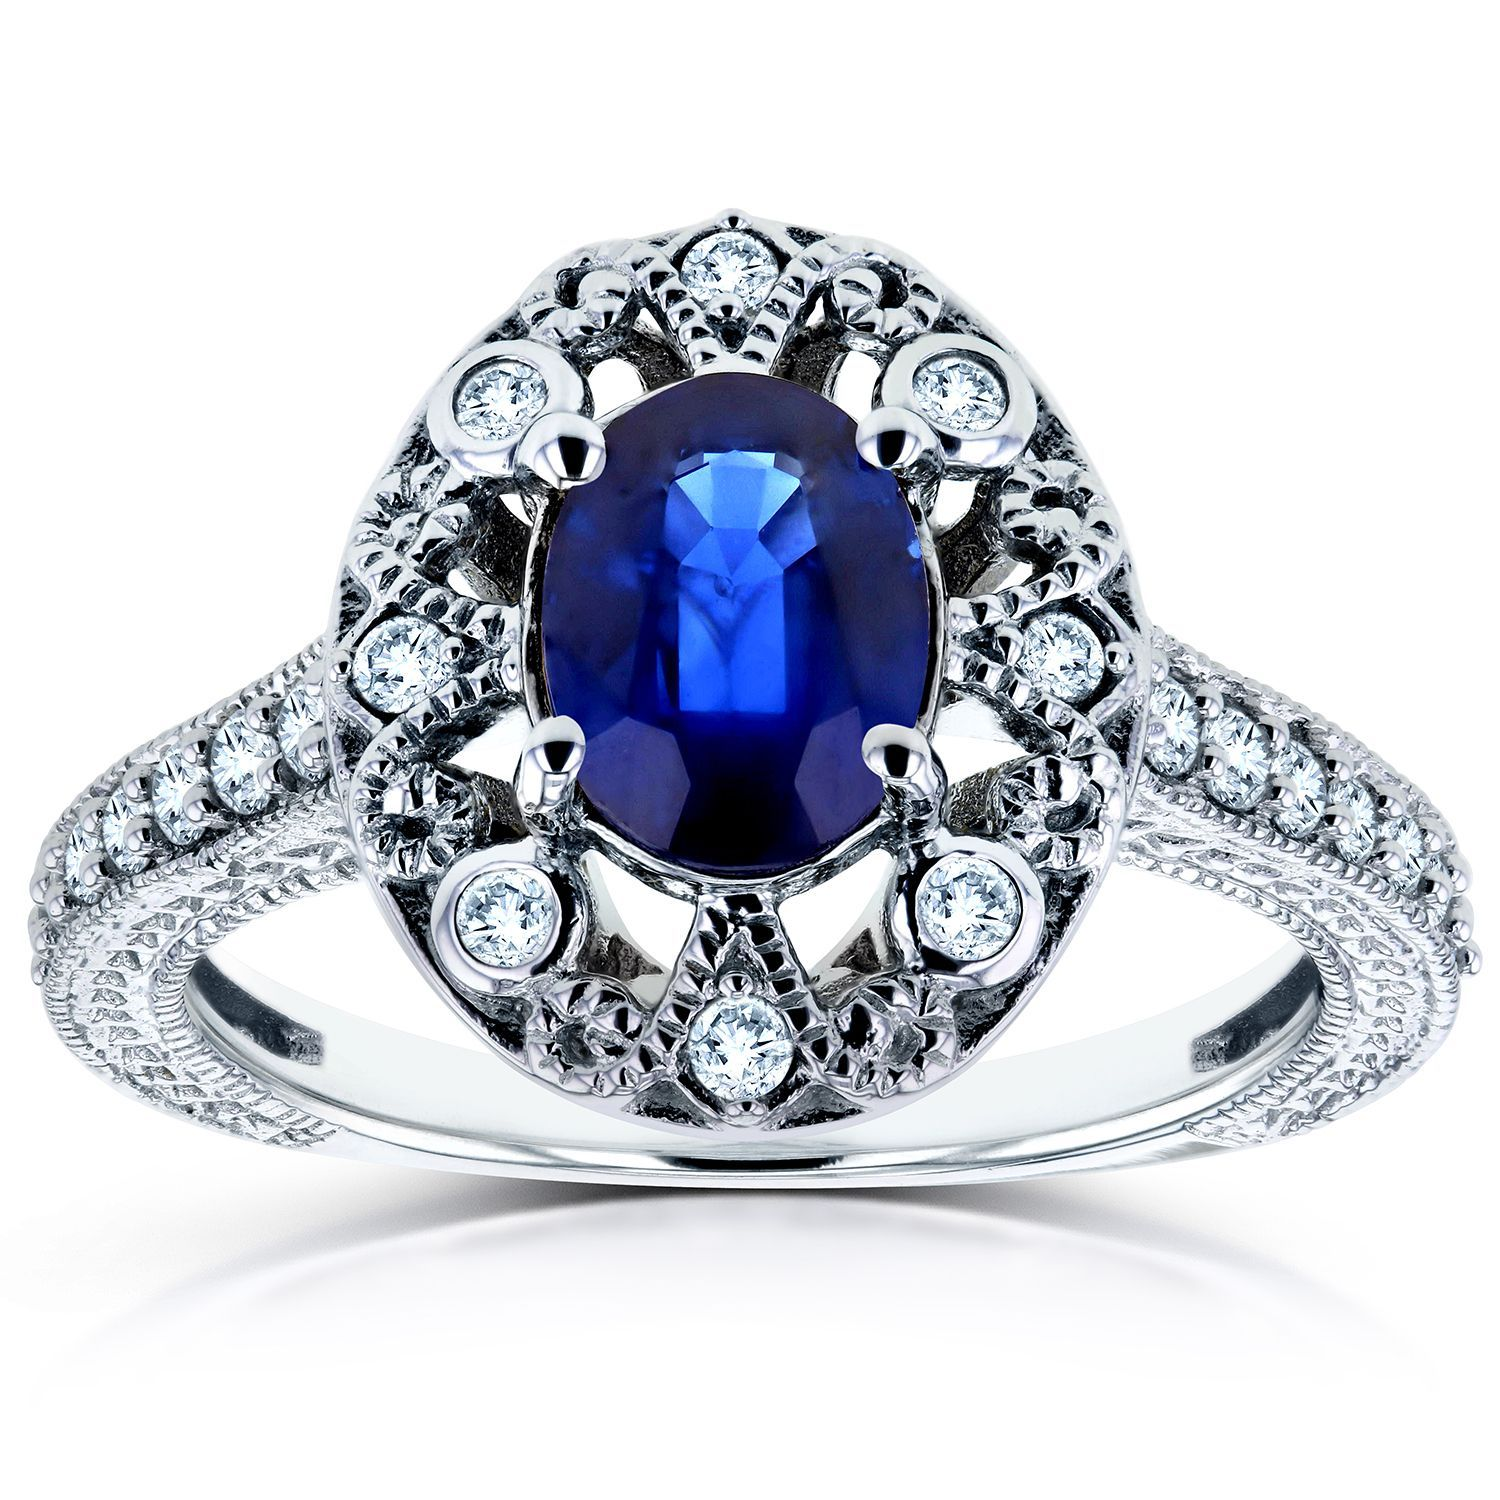 Annello by Kobelli 14k White Gold Oval Blue Sapphire and 1/4ct TDW Diamond Ring (H-I, I2) (Size 10.5), Women's